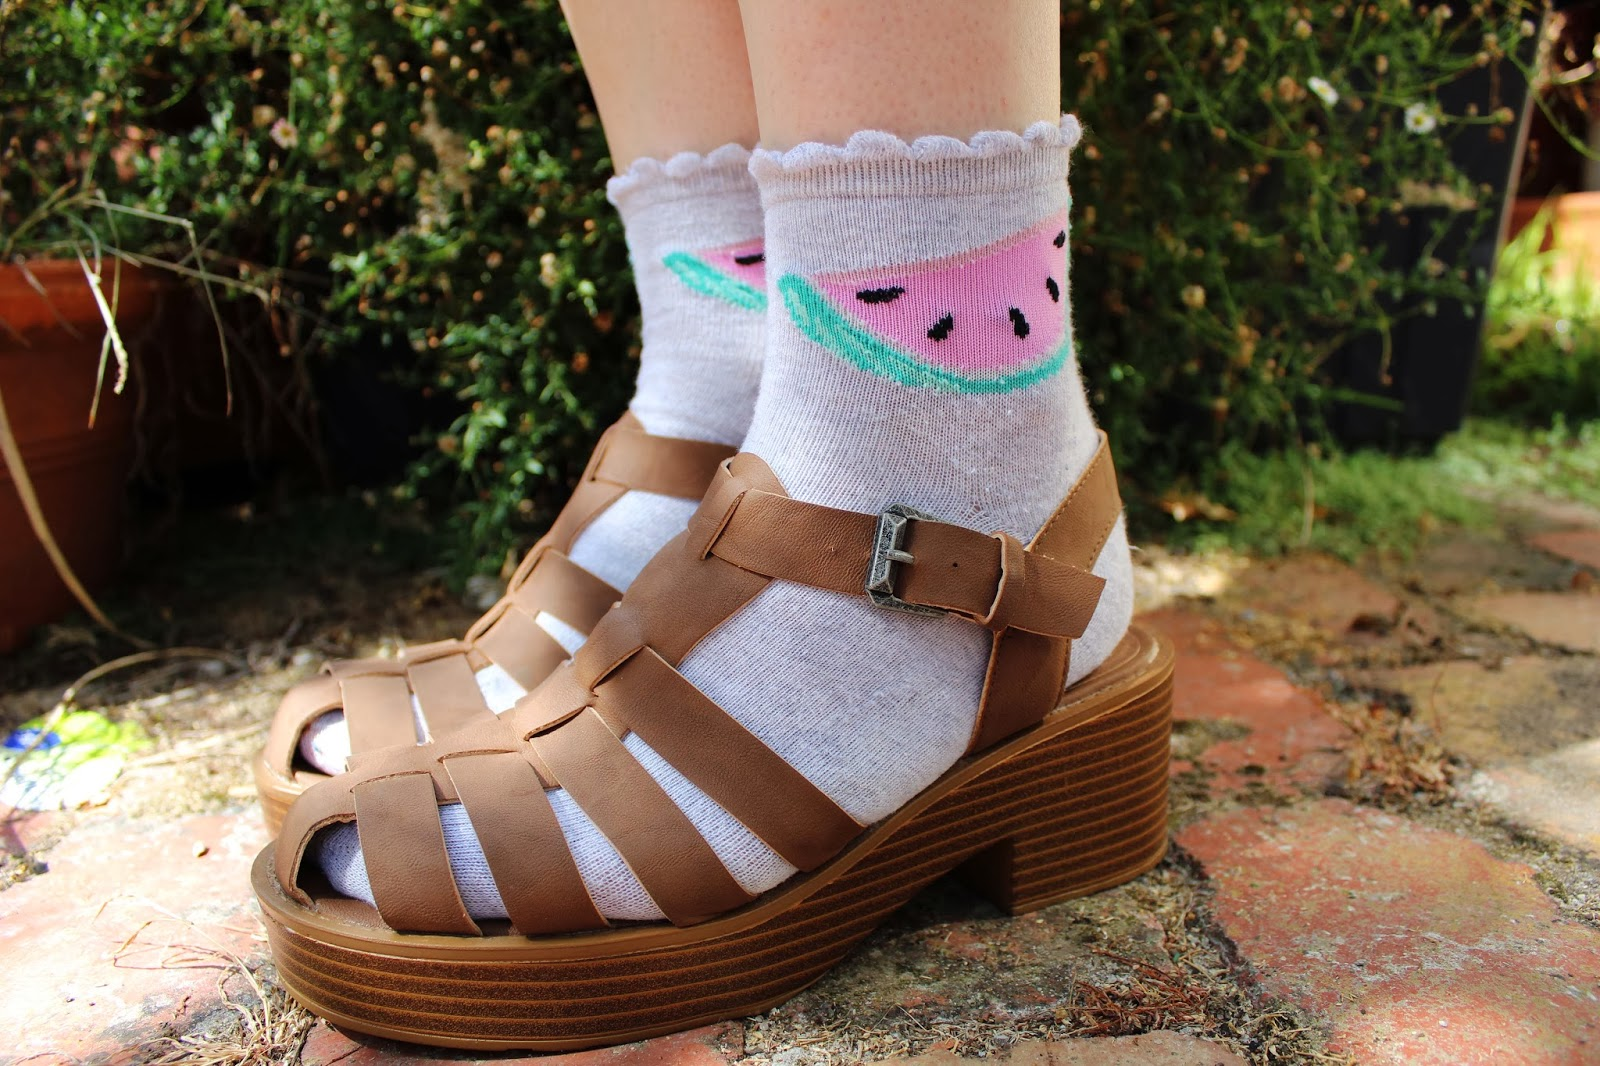 White sandals rubi shoes - The White Sandals Are Windsor Smith And The Brown Sandals Are London Rebel All The Socks Are From Cotton On Body Or Rubi Shoes Part Of The Cotton On